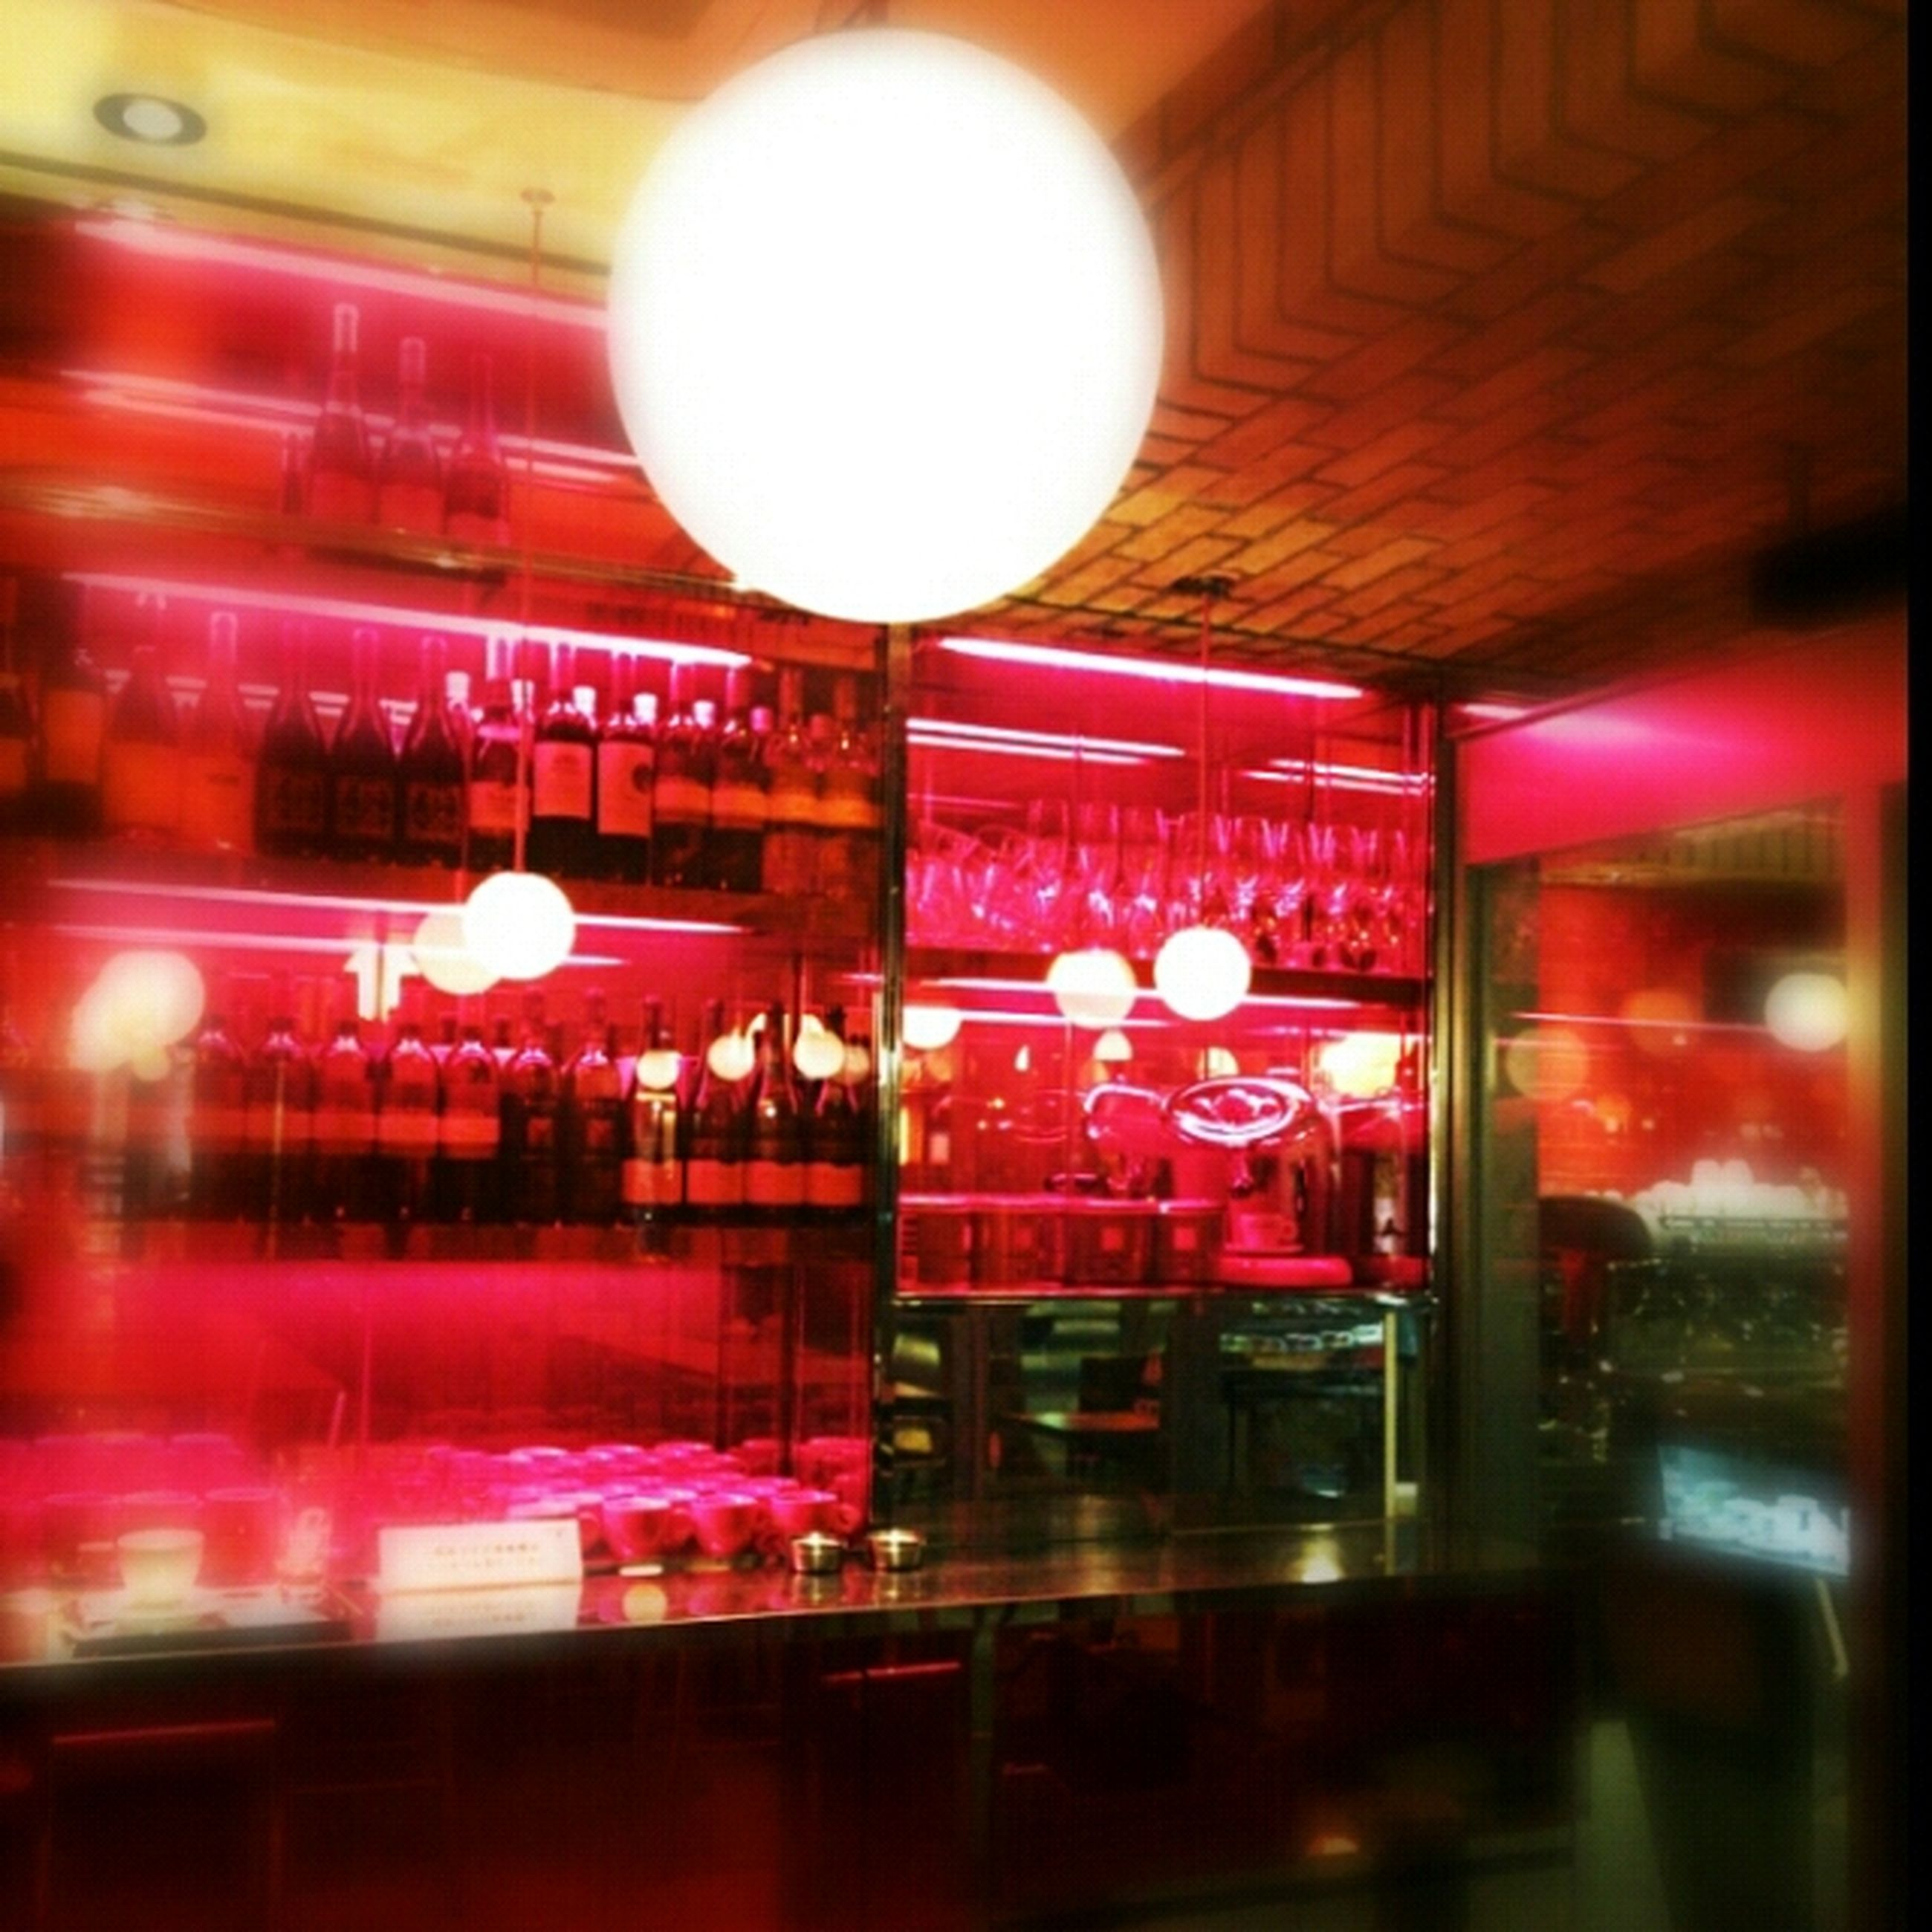 indoors, illuminated, night, glass - material, restaurant, lighting equipment, store, reflection, transparent, table, window, retail, incidental people, food and drink, celebration, red, hanging, shop, display, built structure